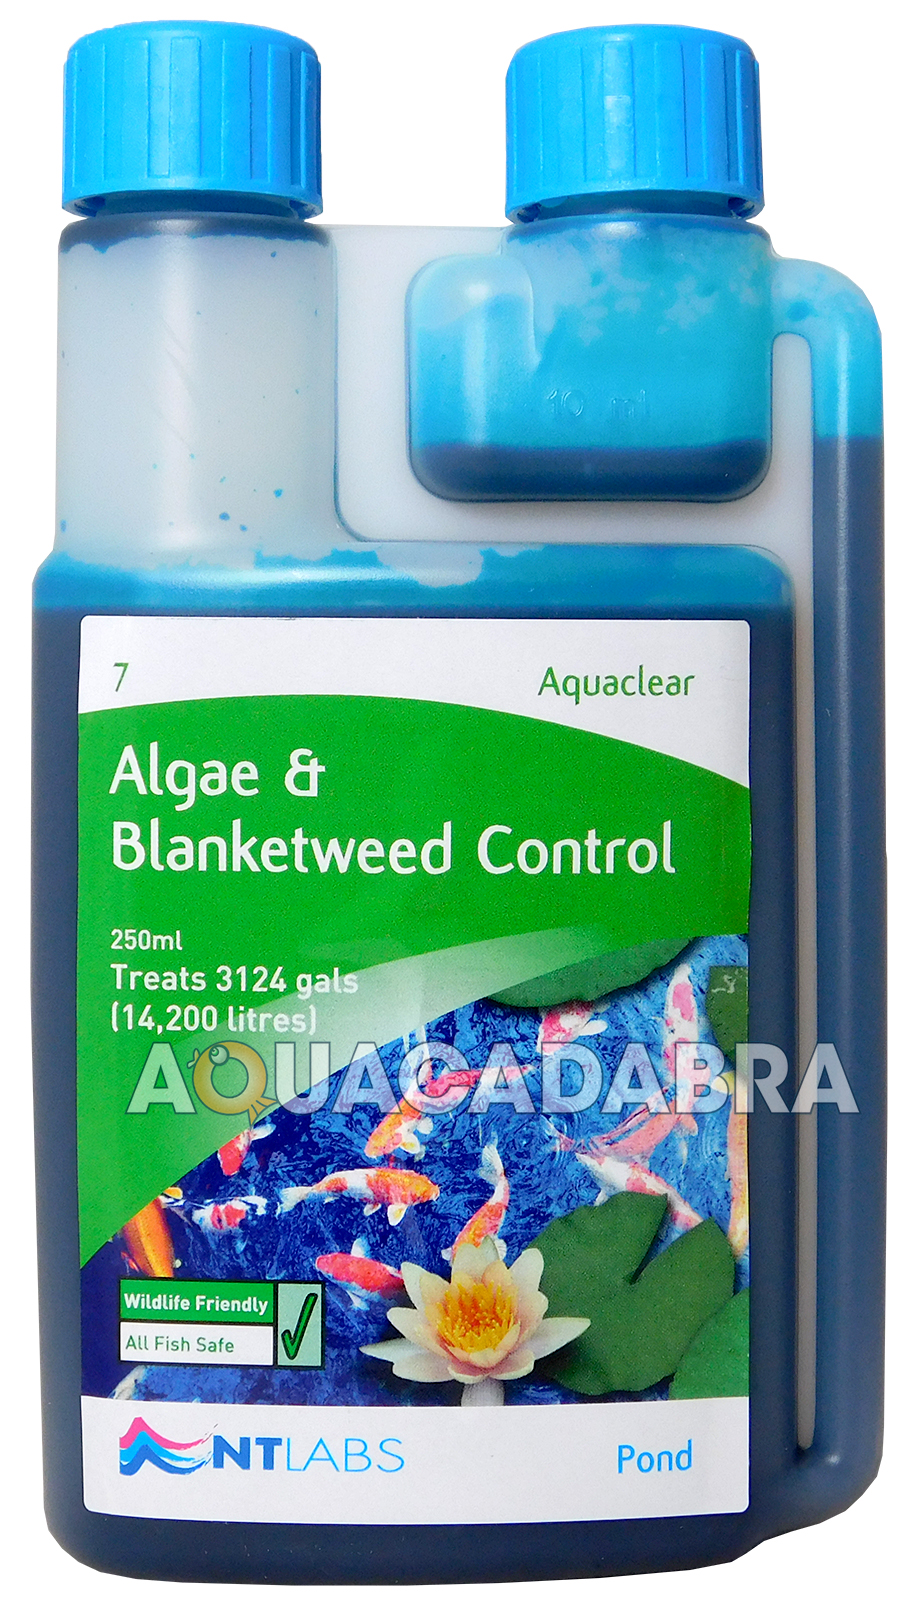 Nt labs aquaclear algae blanketweed control garden fish for Koi pond algae control